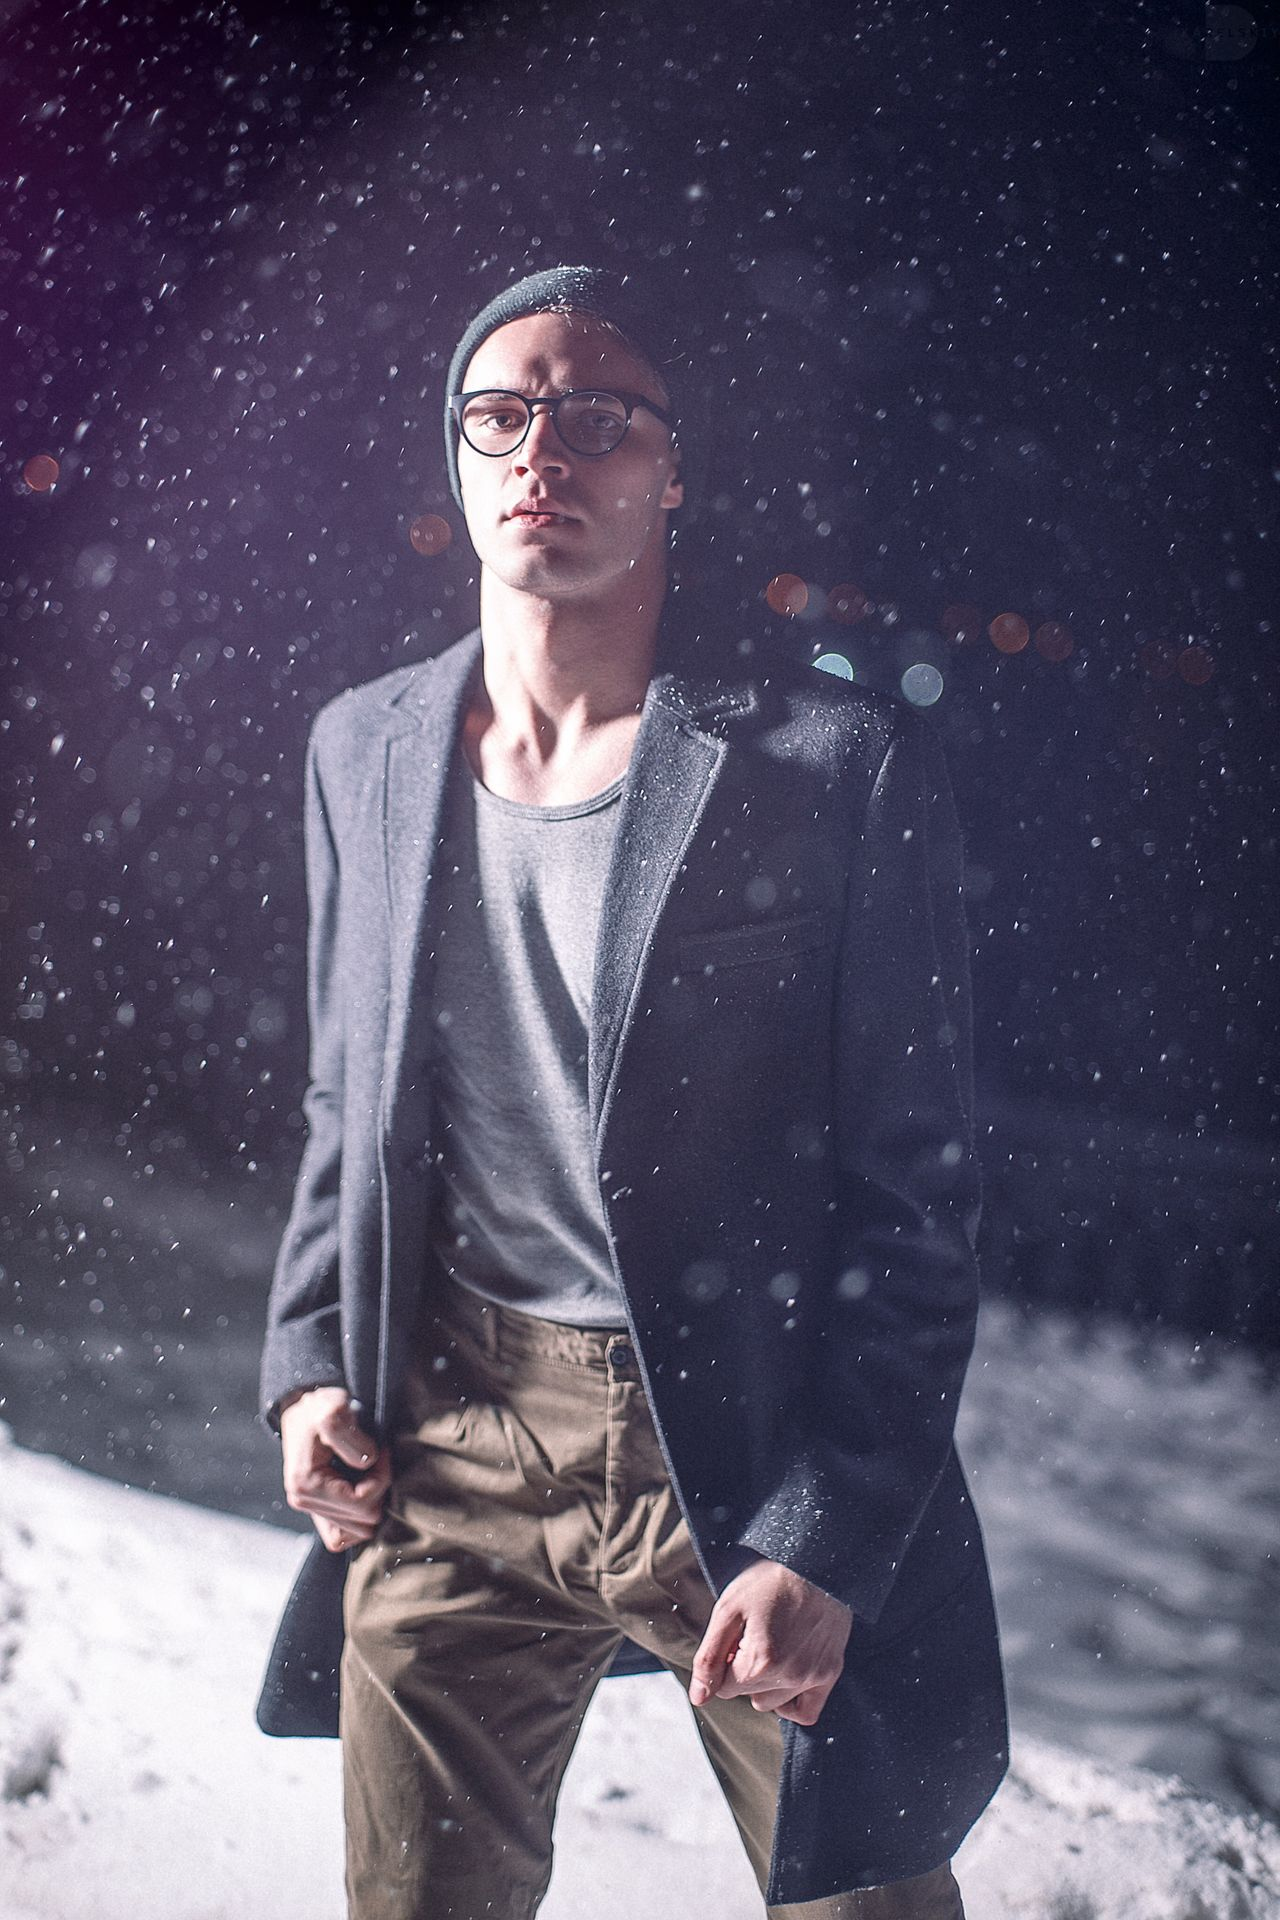 Young Adult Snow Winter Only Men Three Quarter Length Snowing Hands In Pockets One Man Only Cold Temperature Eyeglasses  One Person Standing Adults Only Men People Warm Clothing Adult Snowflake Outdoors Night